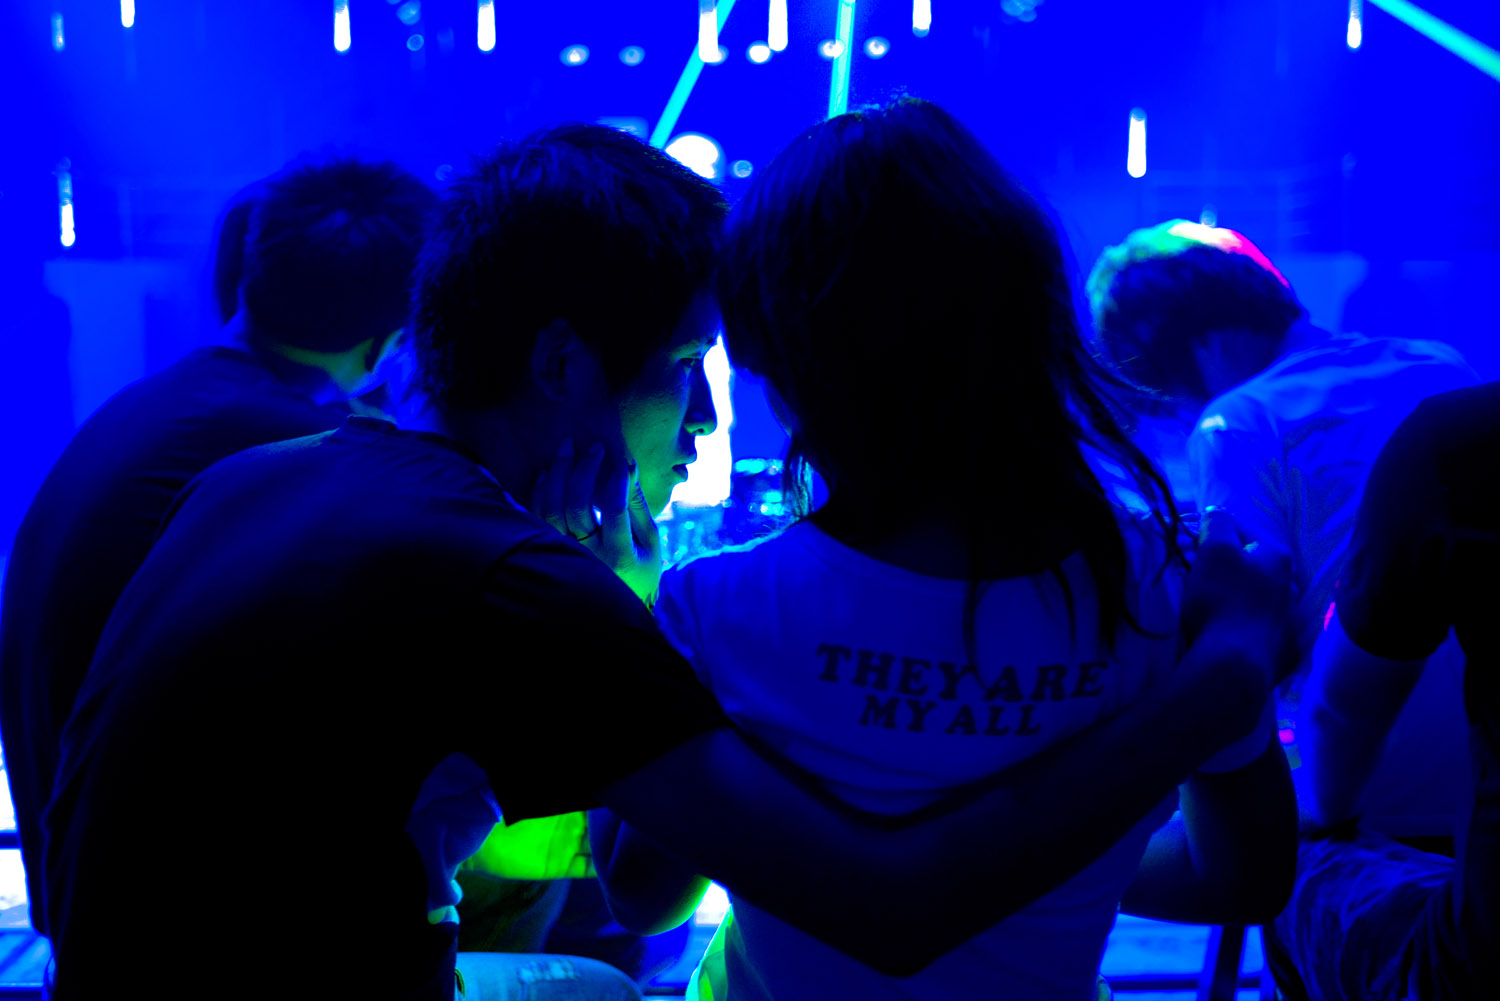 A young couple at a club. Among Foxconn workers many young couples who came to this factory town together, or found romance there. Foxconn dorms have a strictly enforced gender segregation, requiring couples to rent rooms in the city.